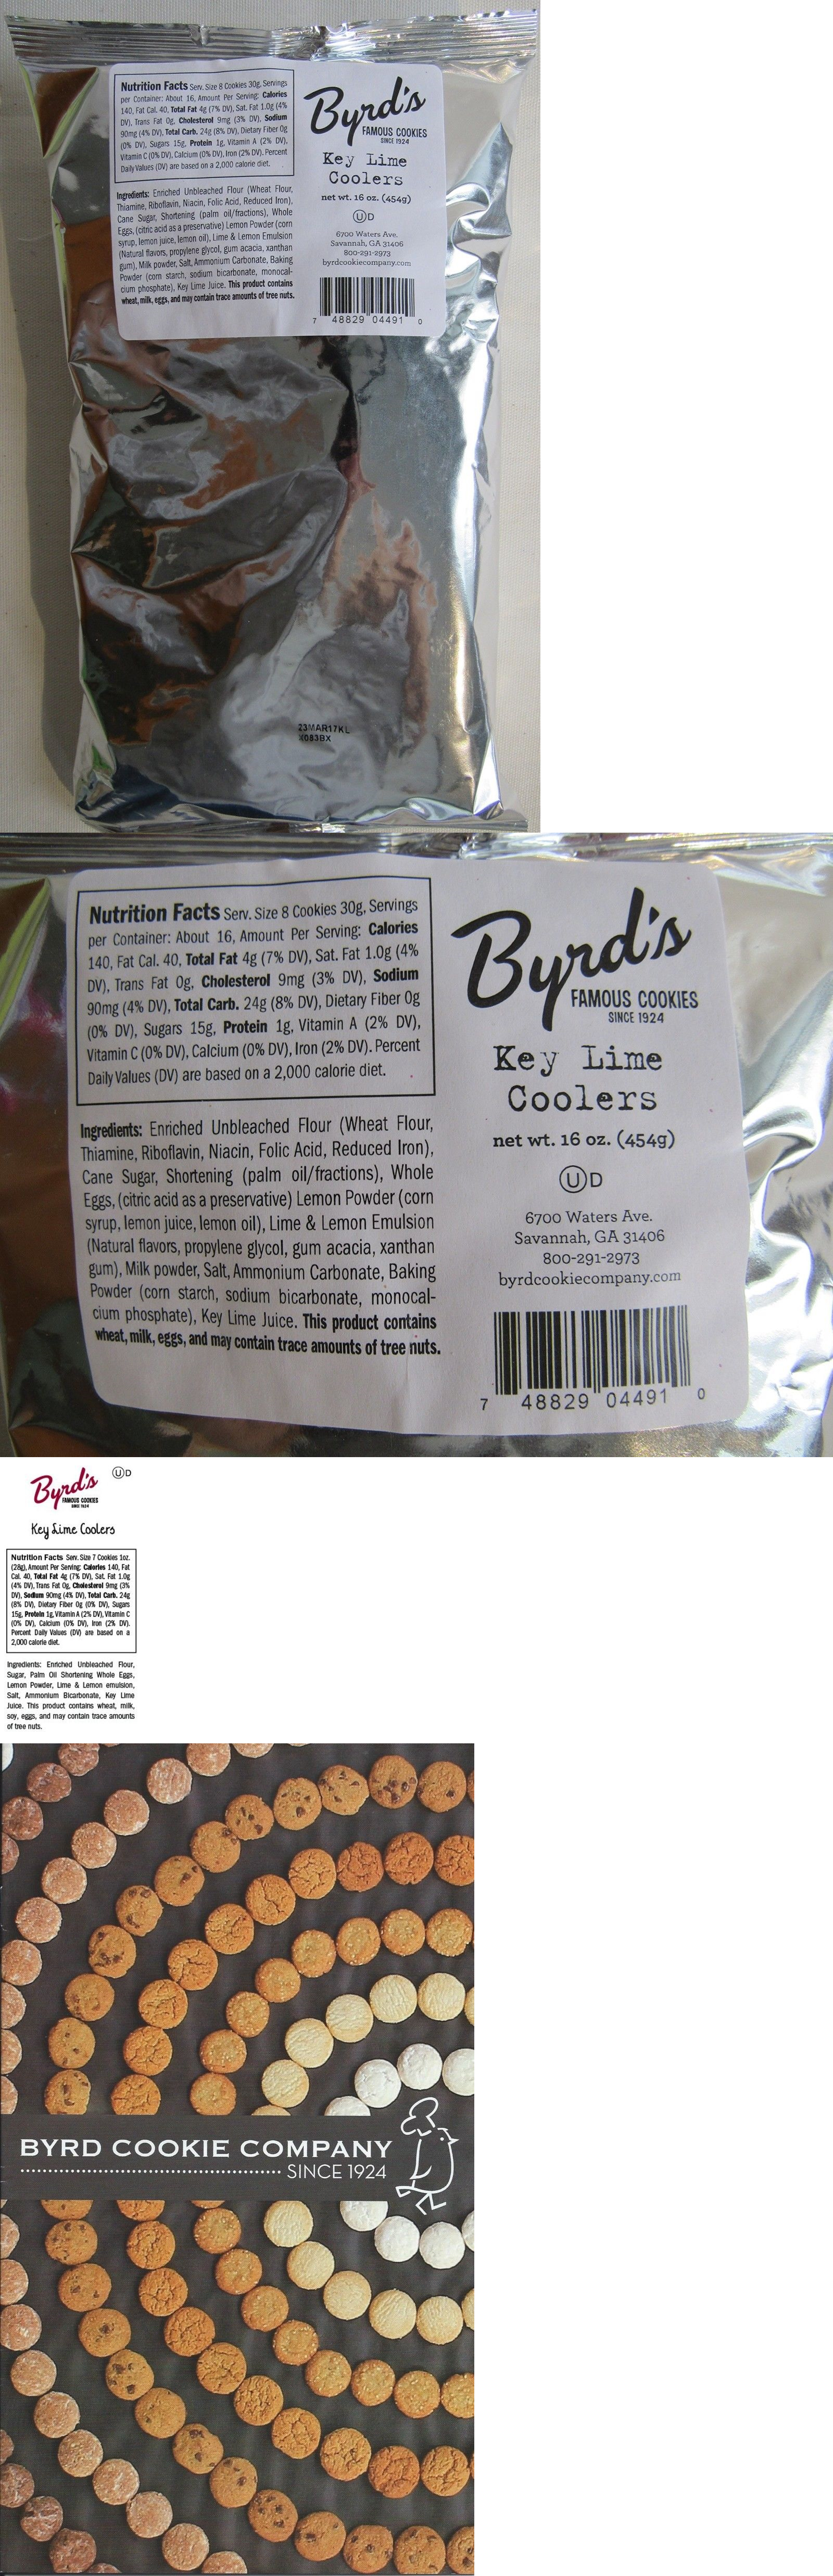 recipe: where to buy byrds cookies [38]